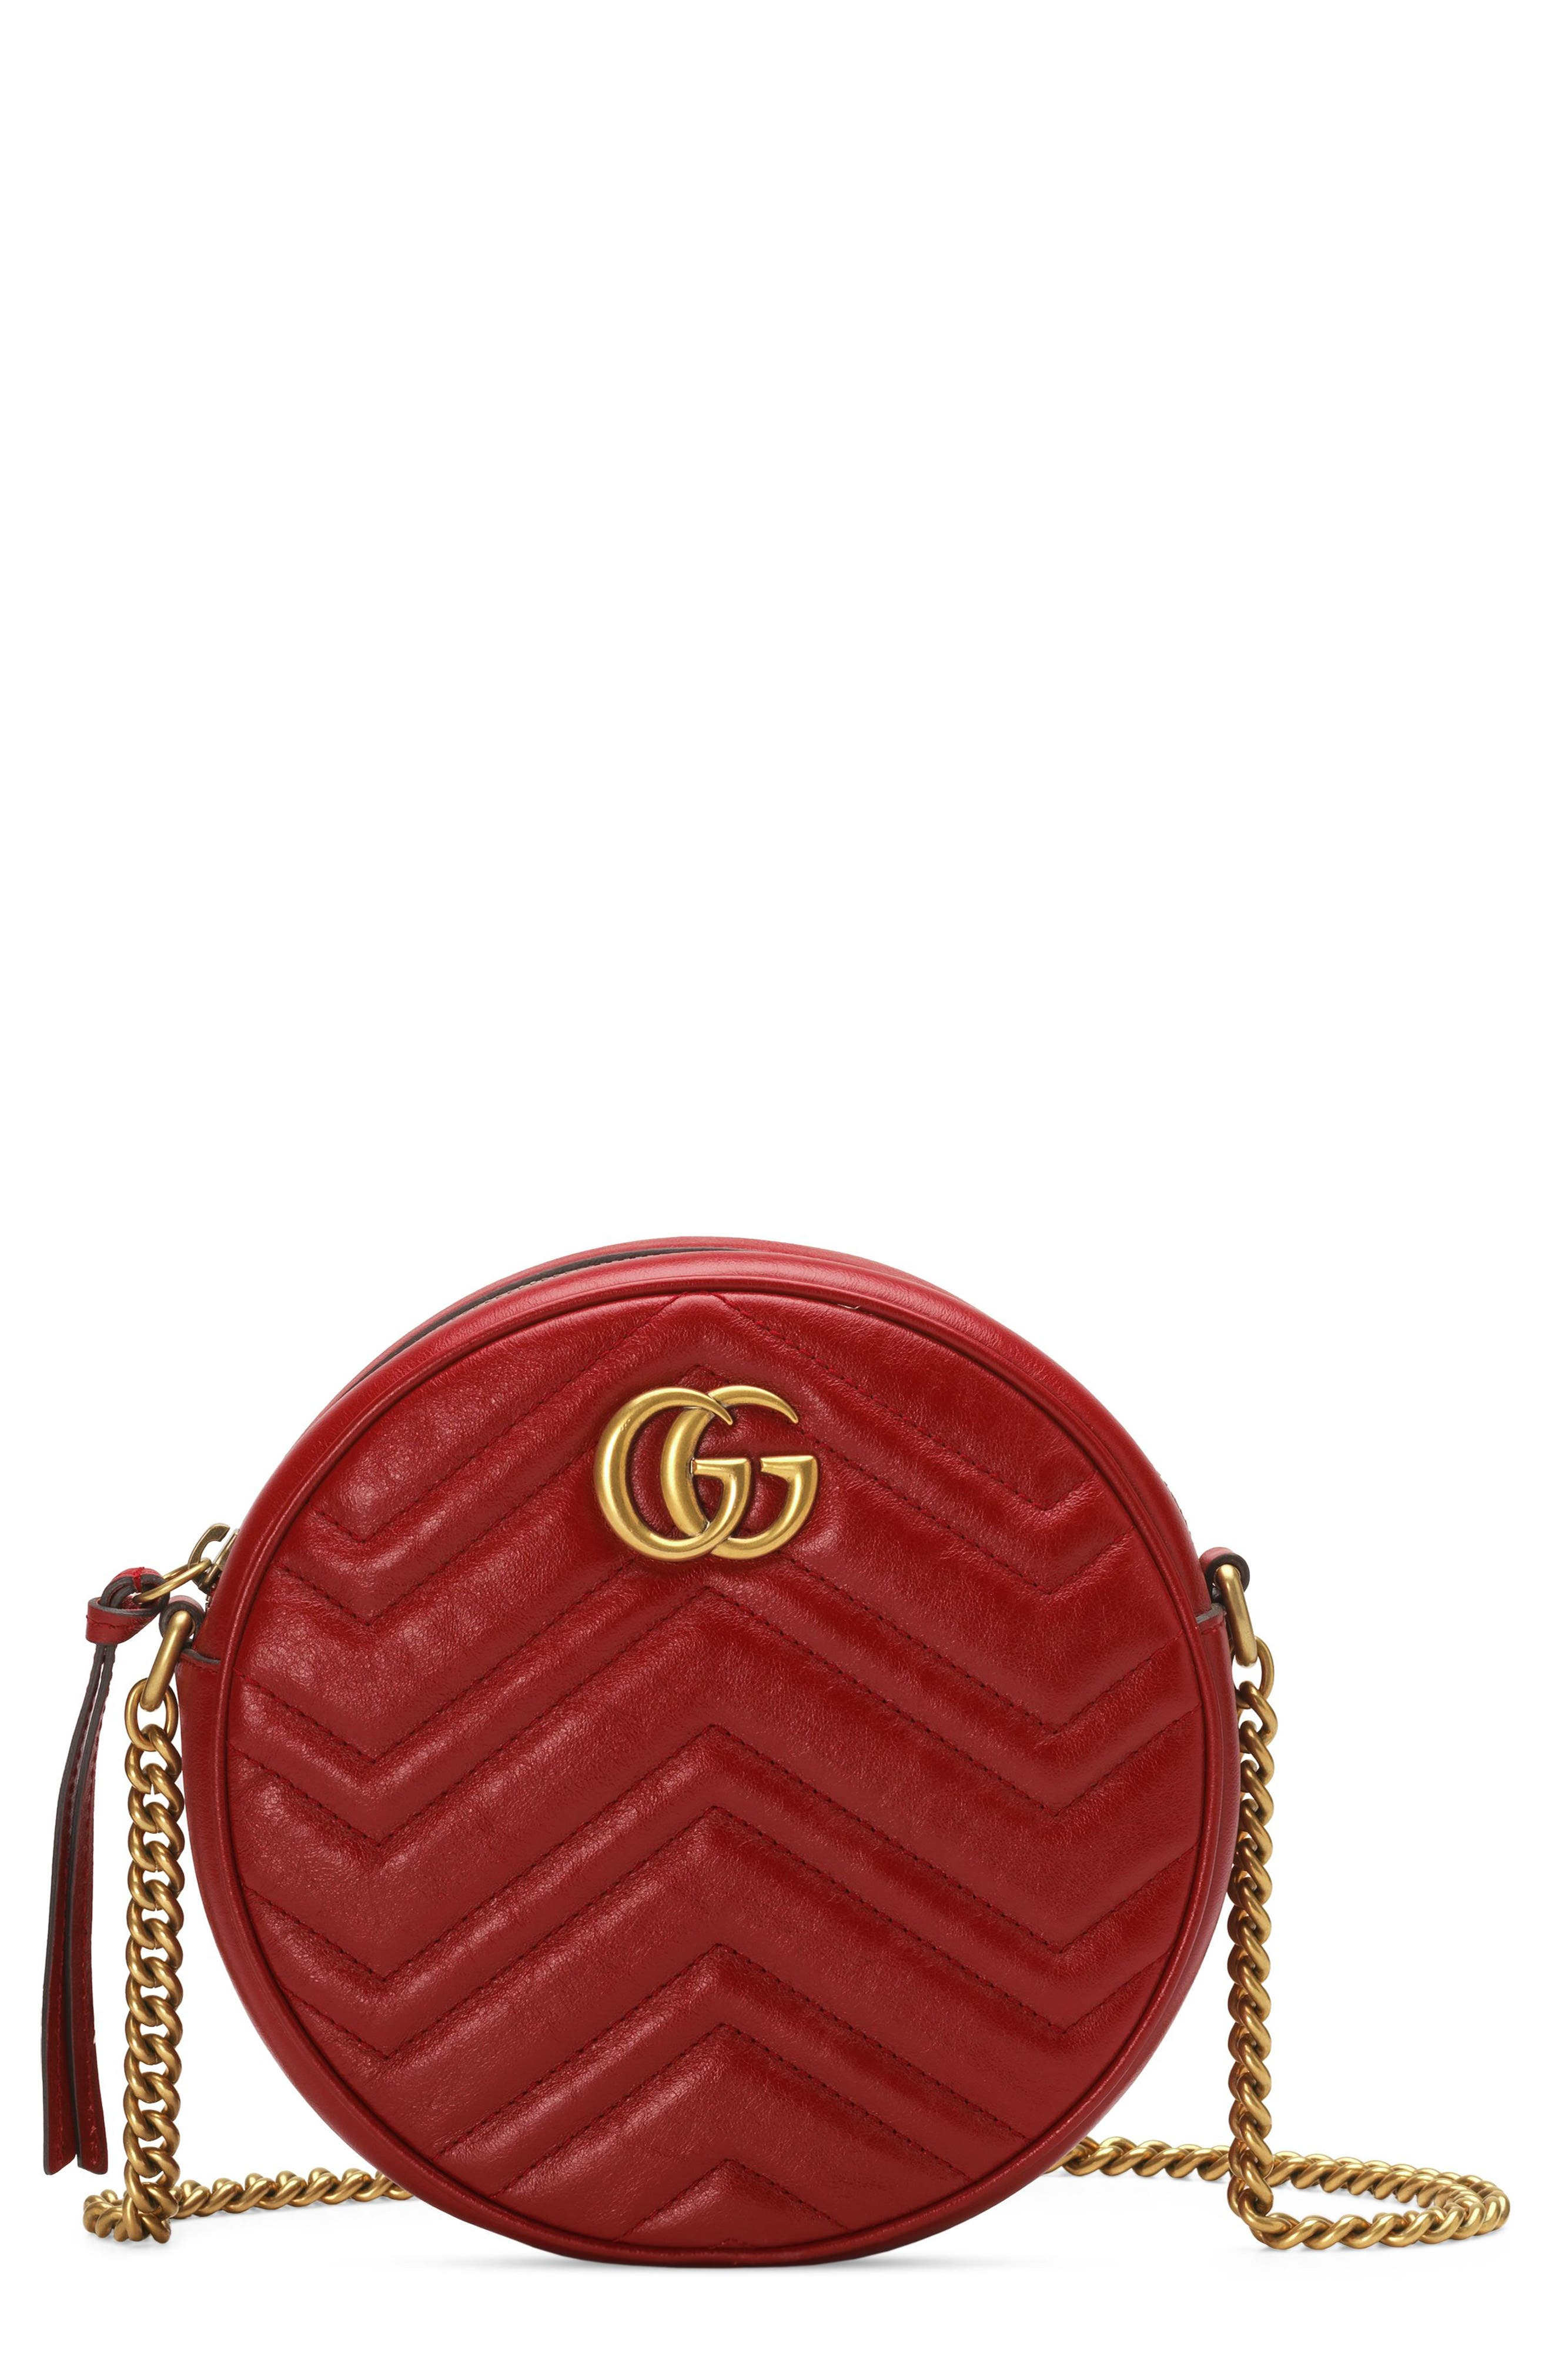 Double-G hardware inspired by a \\\'70s-era archival design rounds out the chic look of a leather bag detailed with matelasse chevrons and a quilted heart. Style Name: Gucci Mini Gg Matelasse Round Leather Shoulder Bag. Style Number: 5742048. Available in stores.